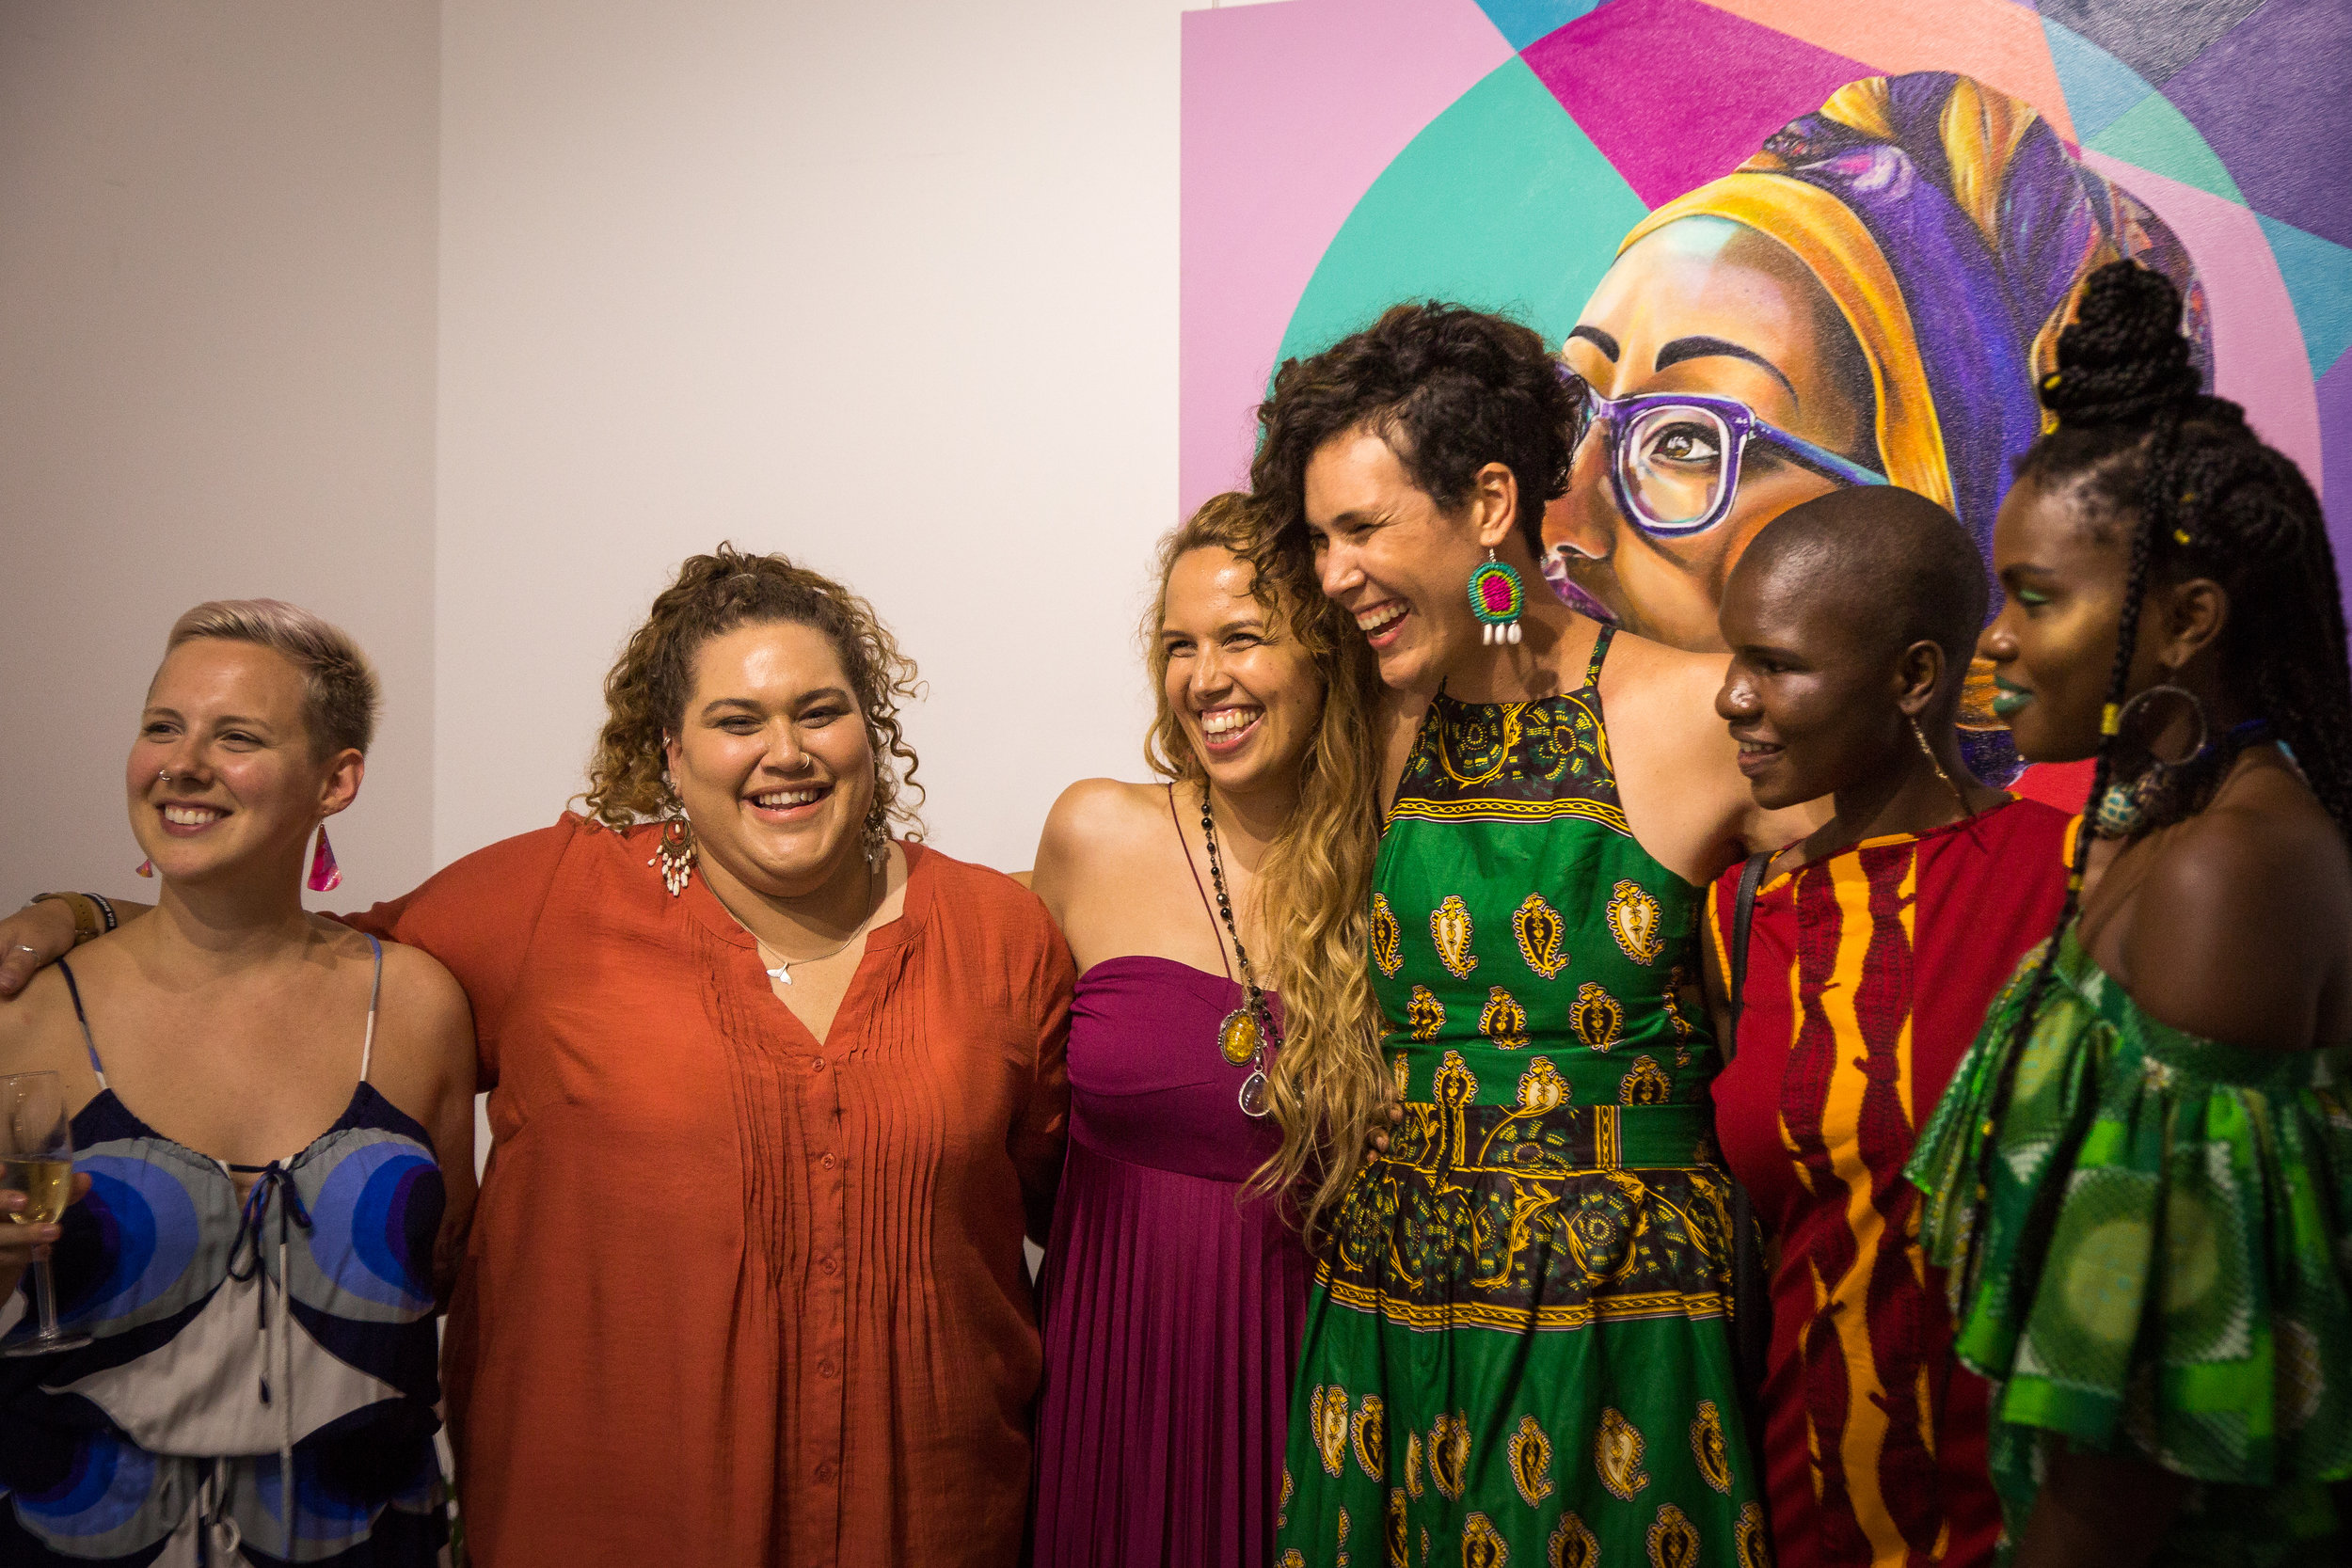 Tamara pictured with women from the series